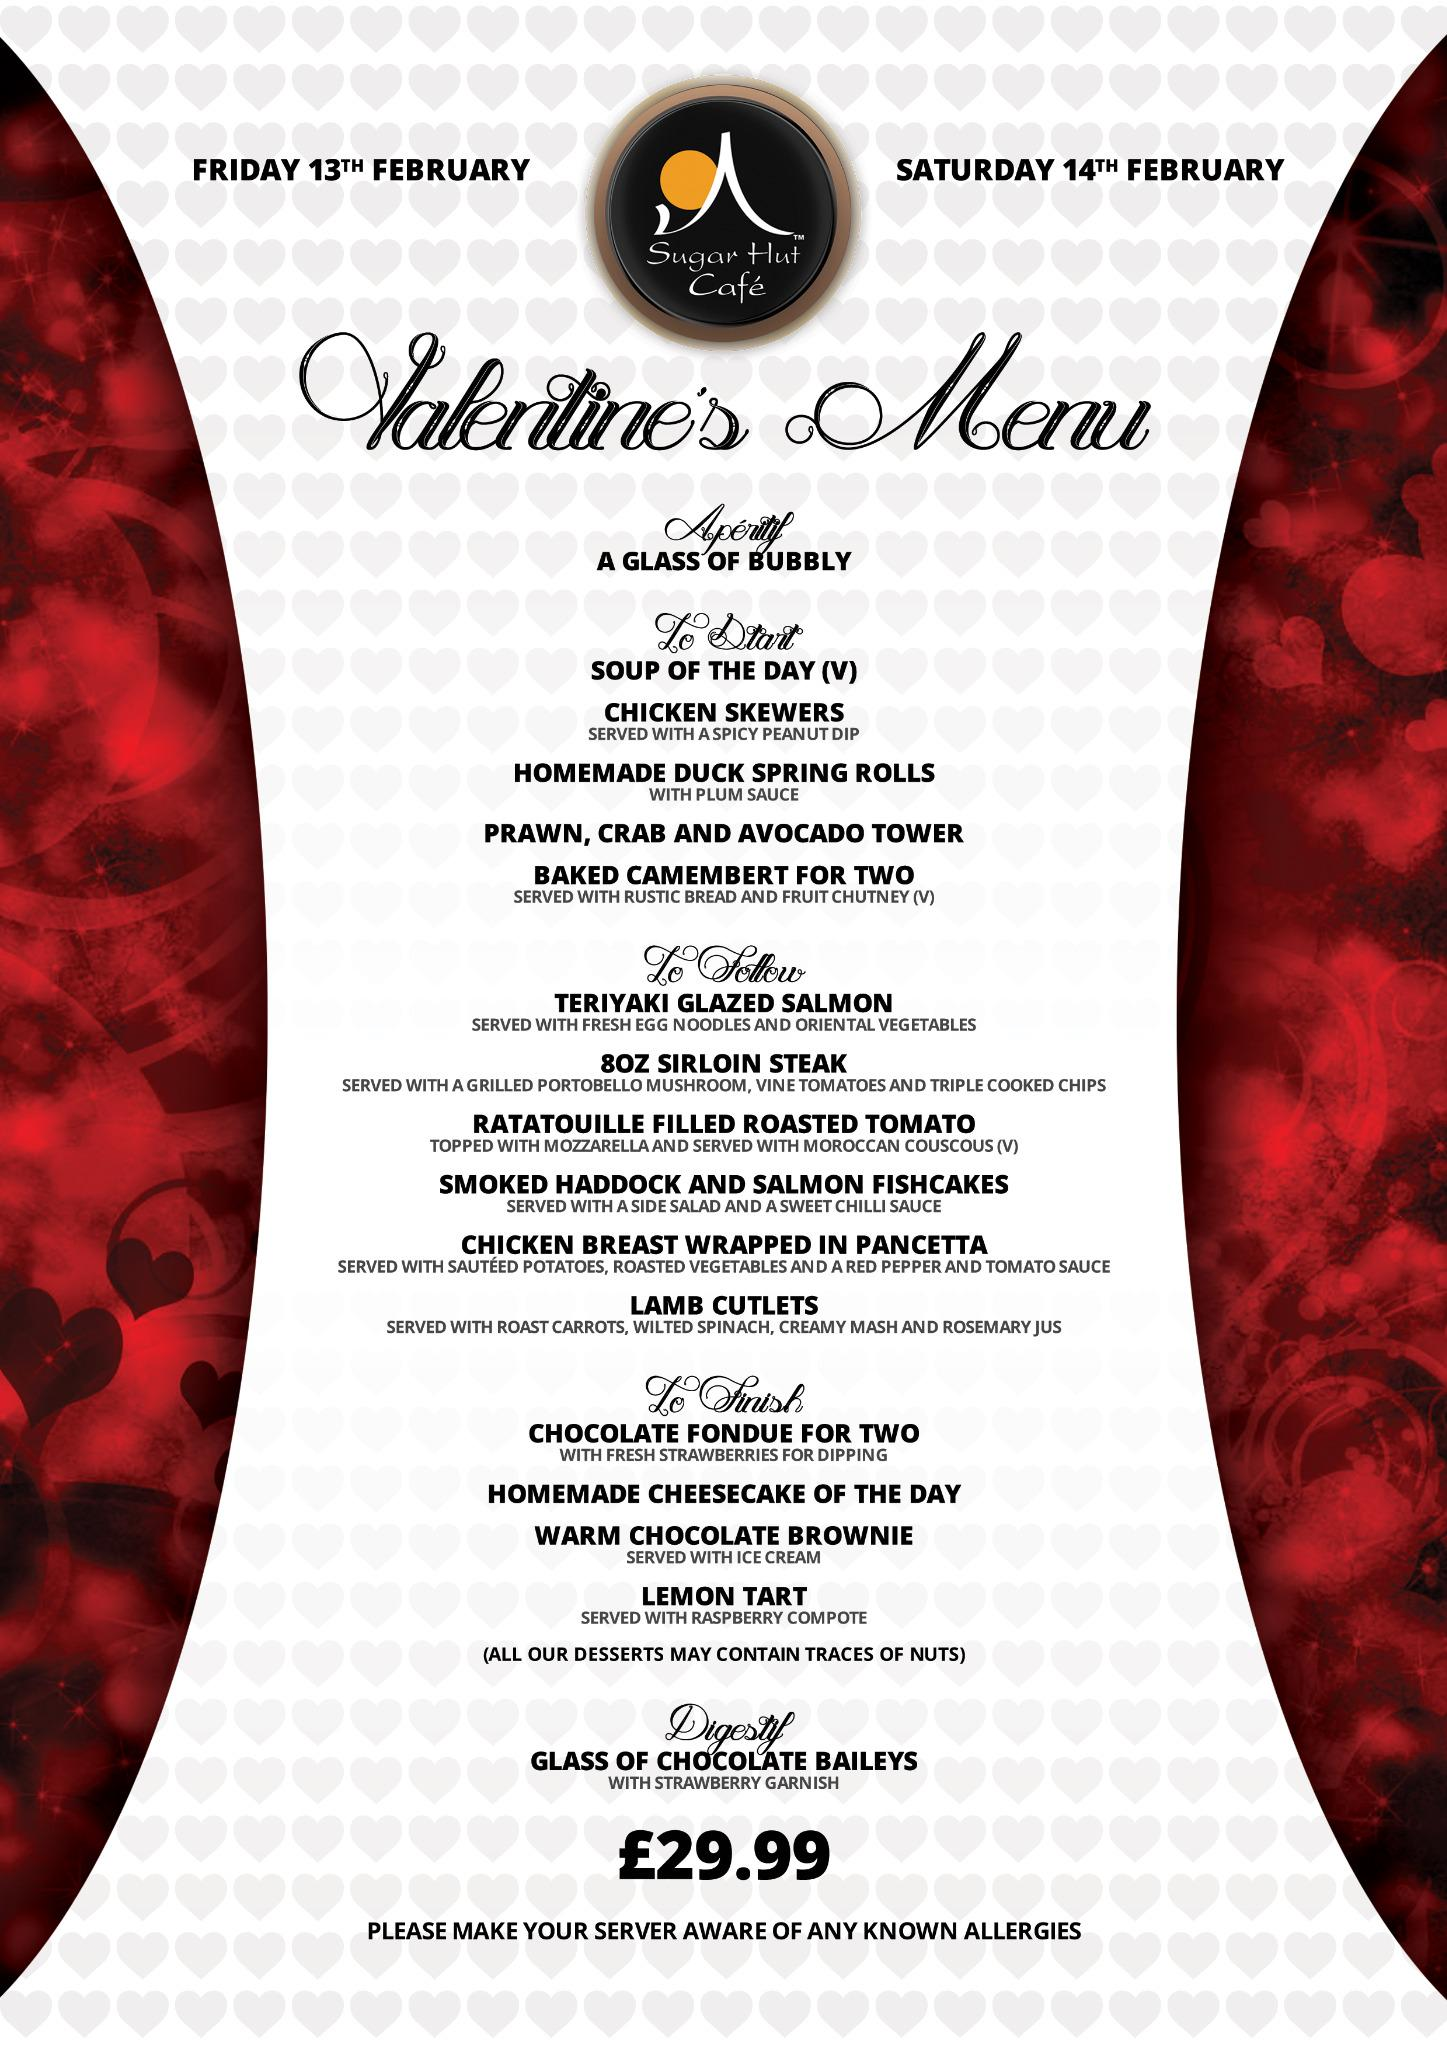 Love is in the air at @SugarHutCafe this Valentine's weekend. 5 Courses for £29.99 http://t.co/NKVXB7J1cq